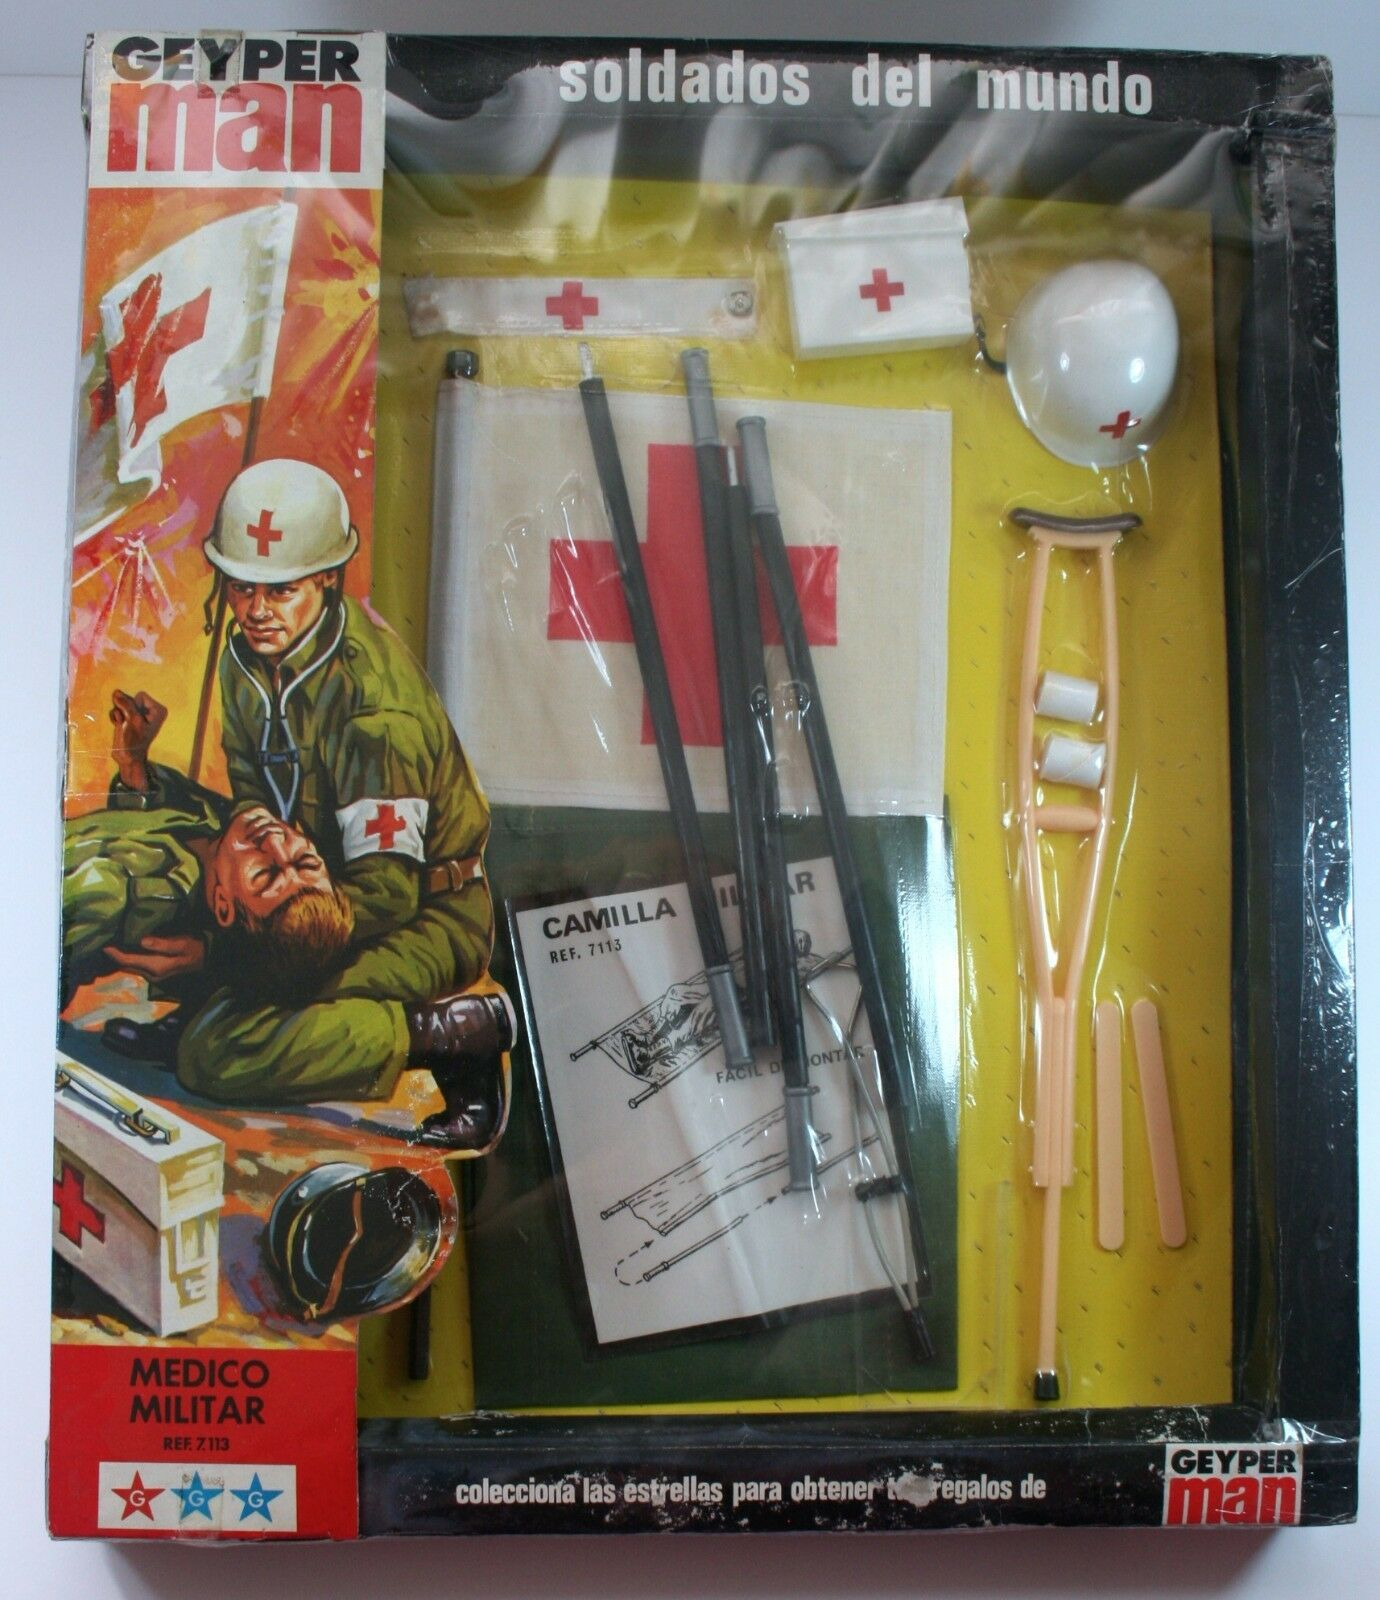 GEYPERMAN ORIGINAL 1980 EQUIPO MEDICO MILITAR action man gi joe madelman NEW